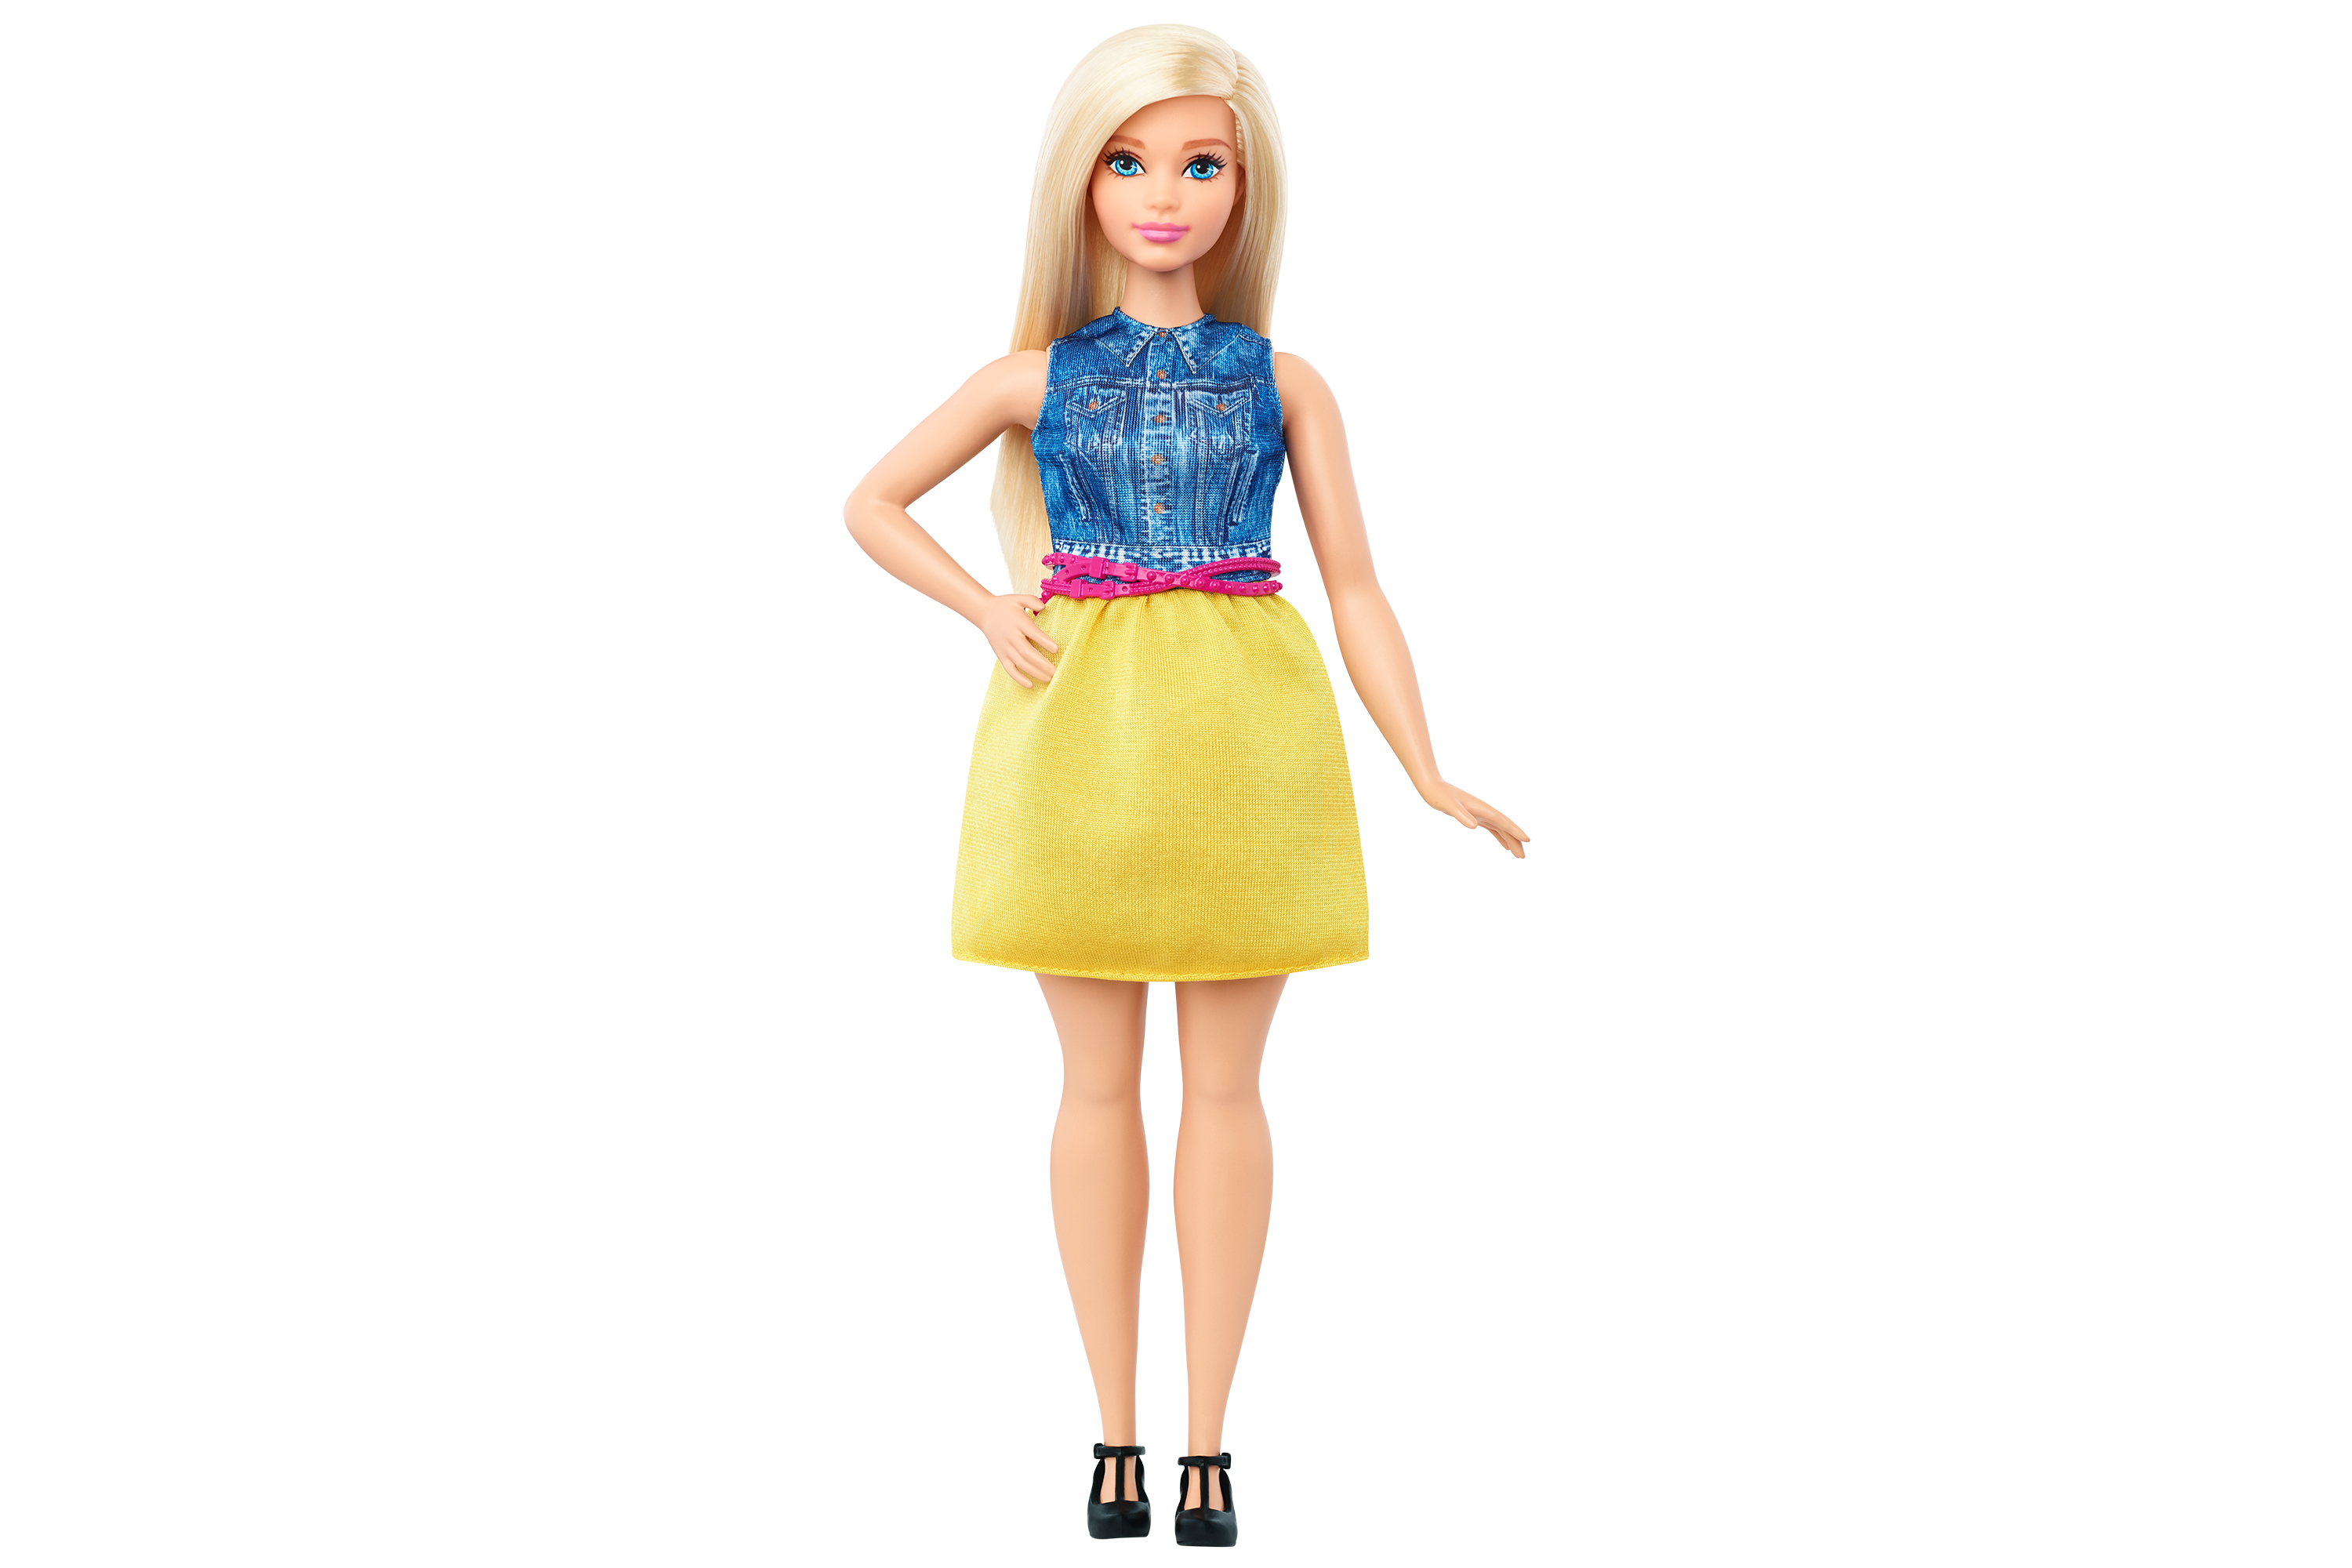 Barbie Girl Toy With White Background